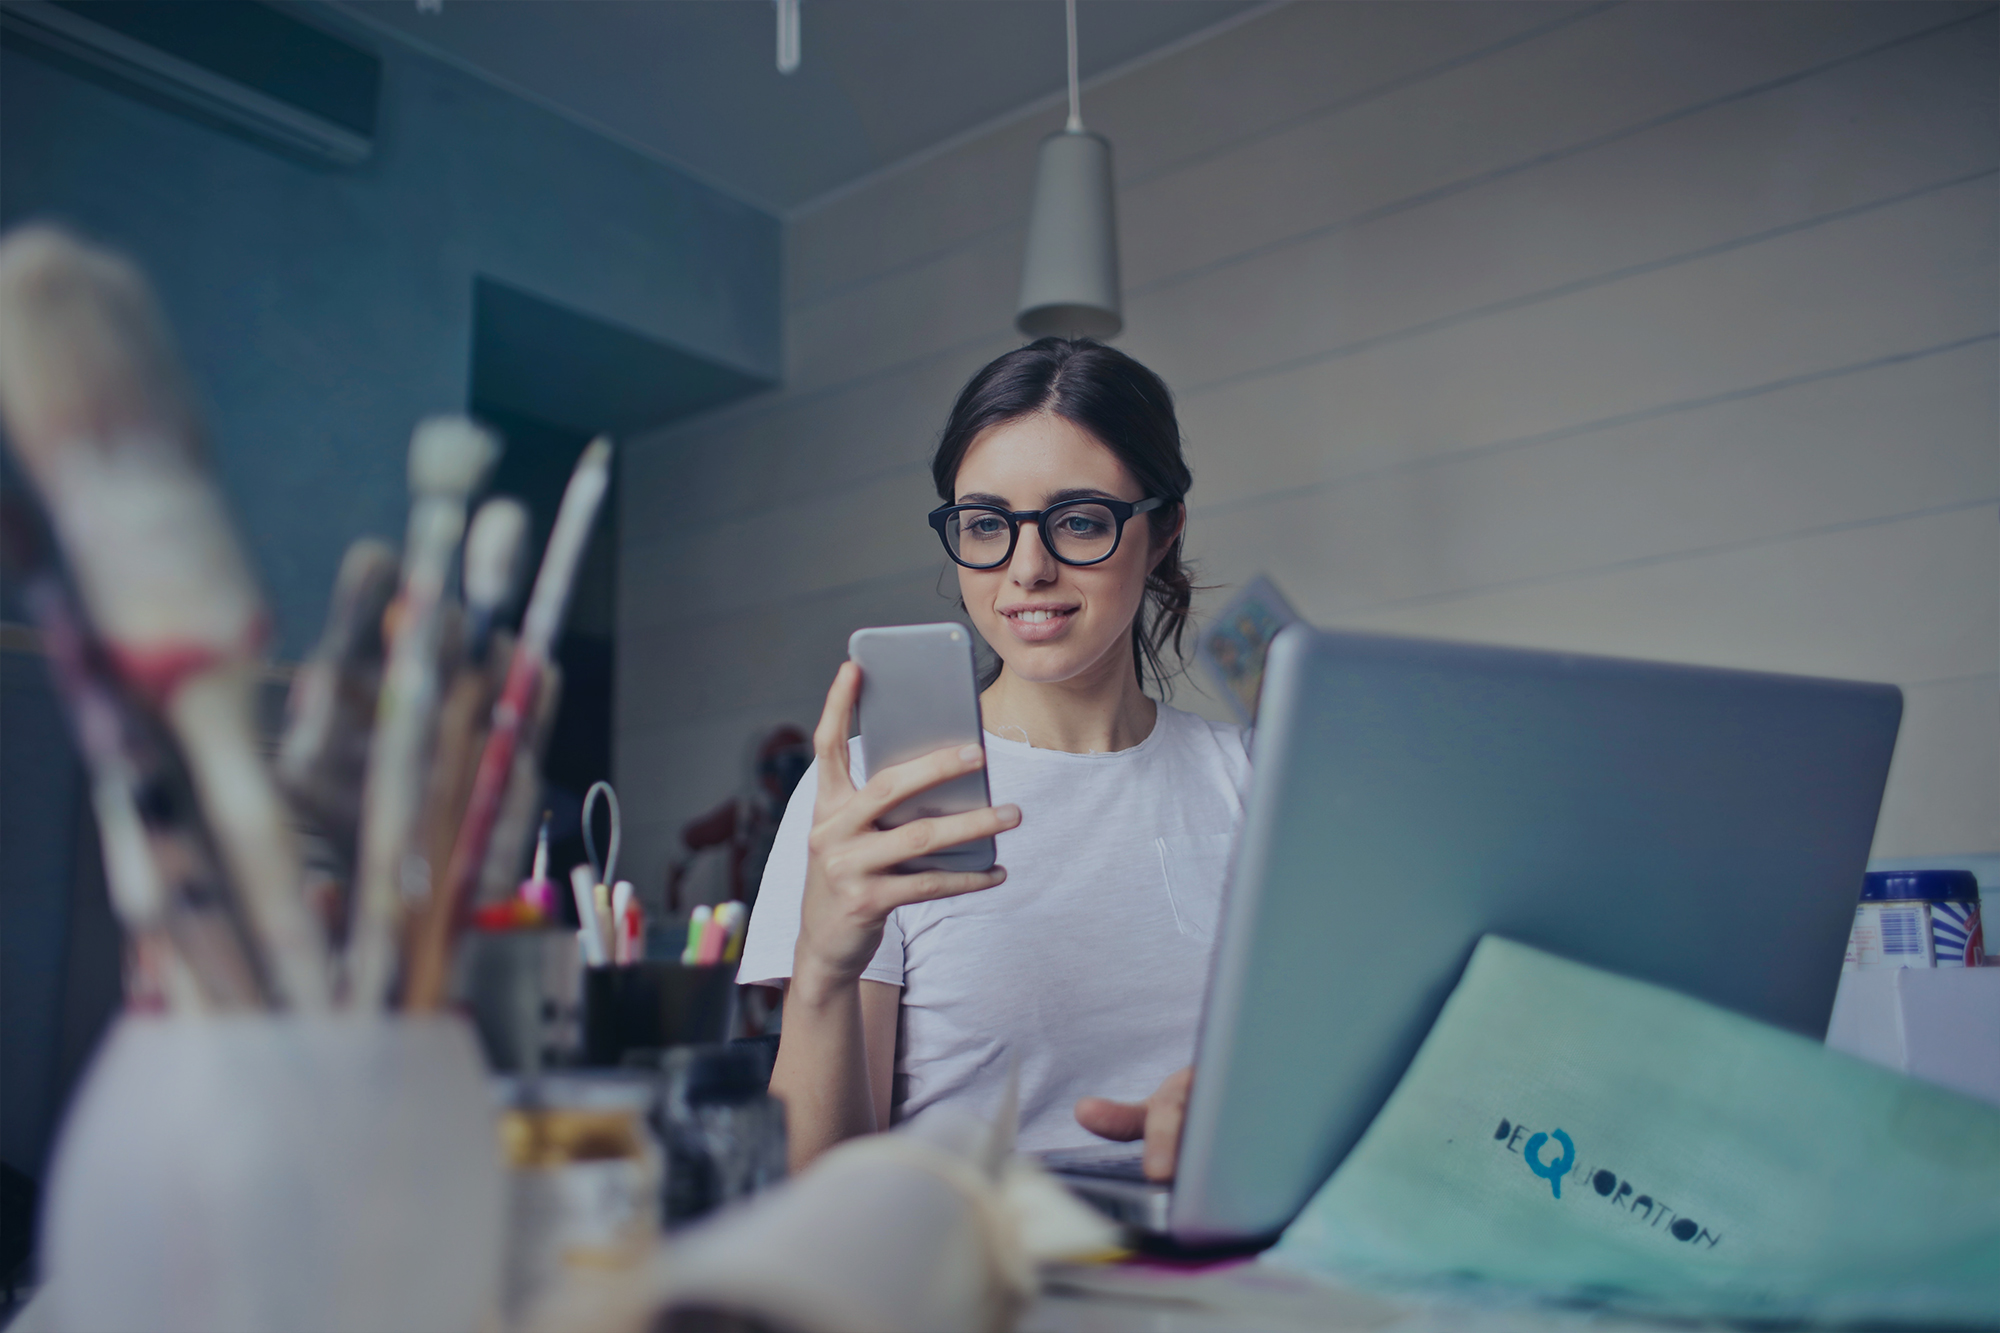 Woman with a cellphone at work